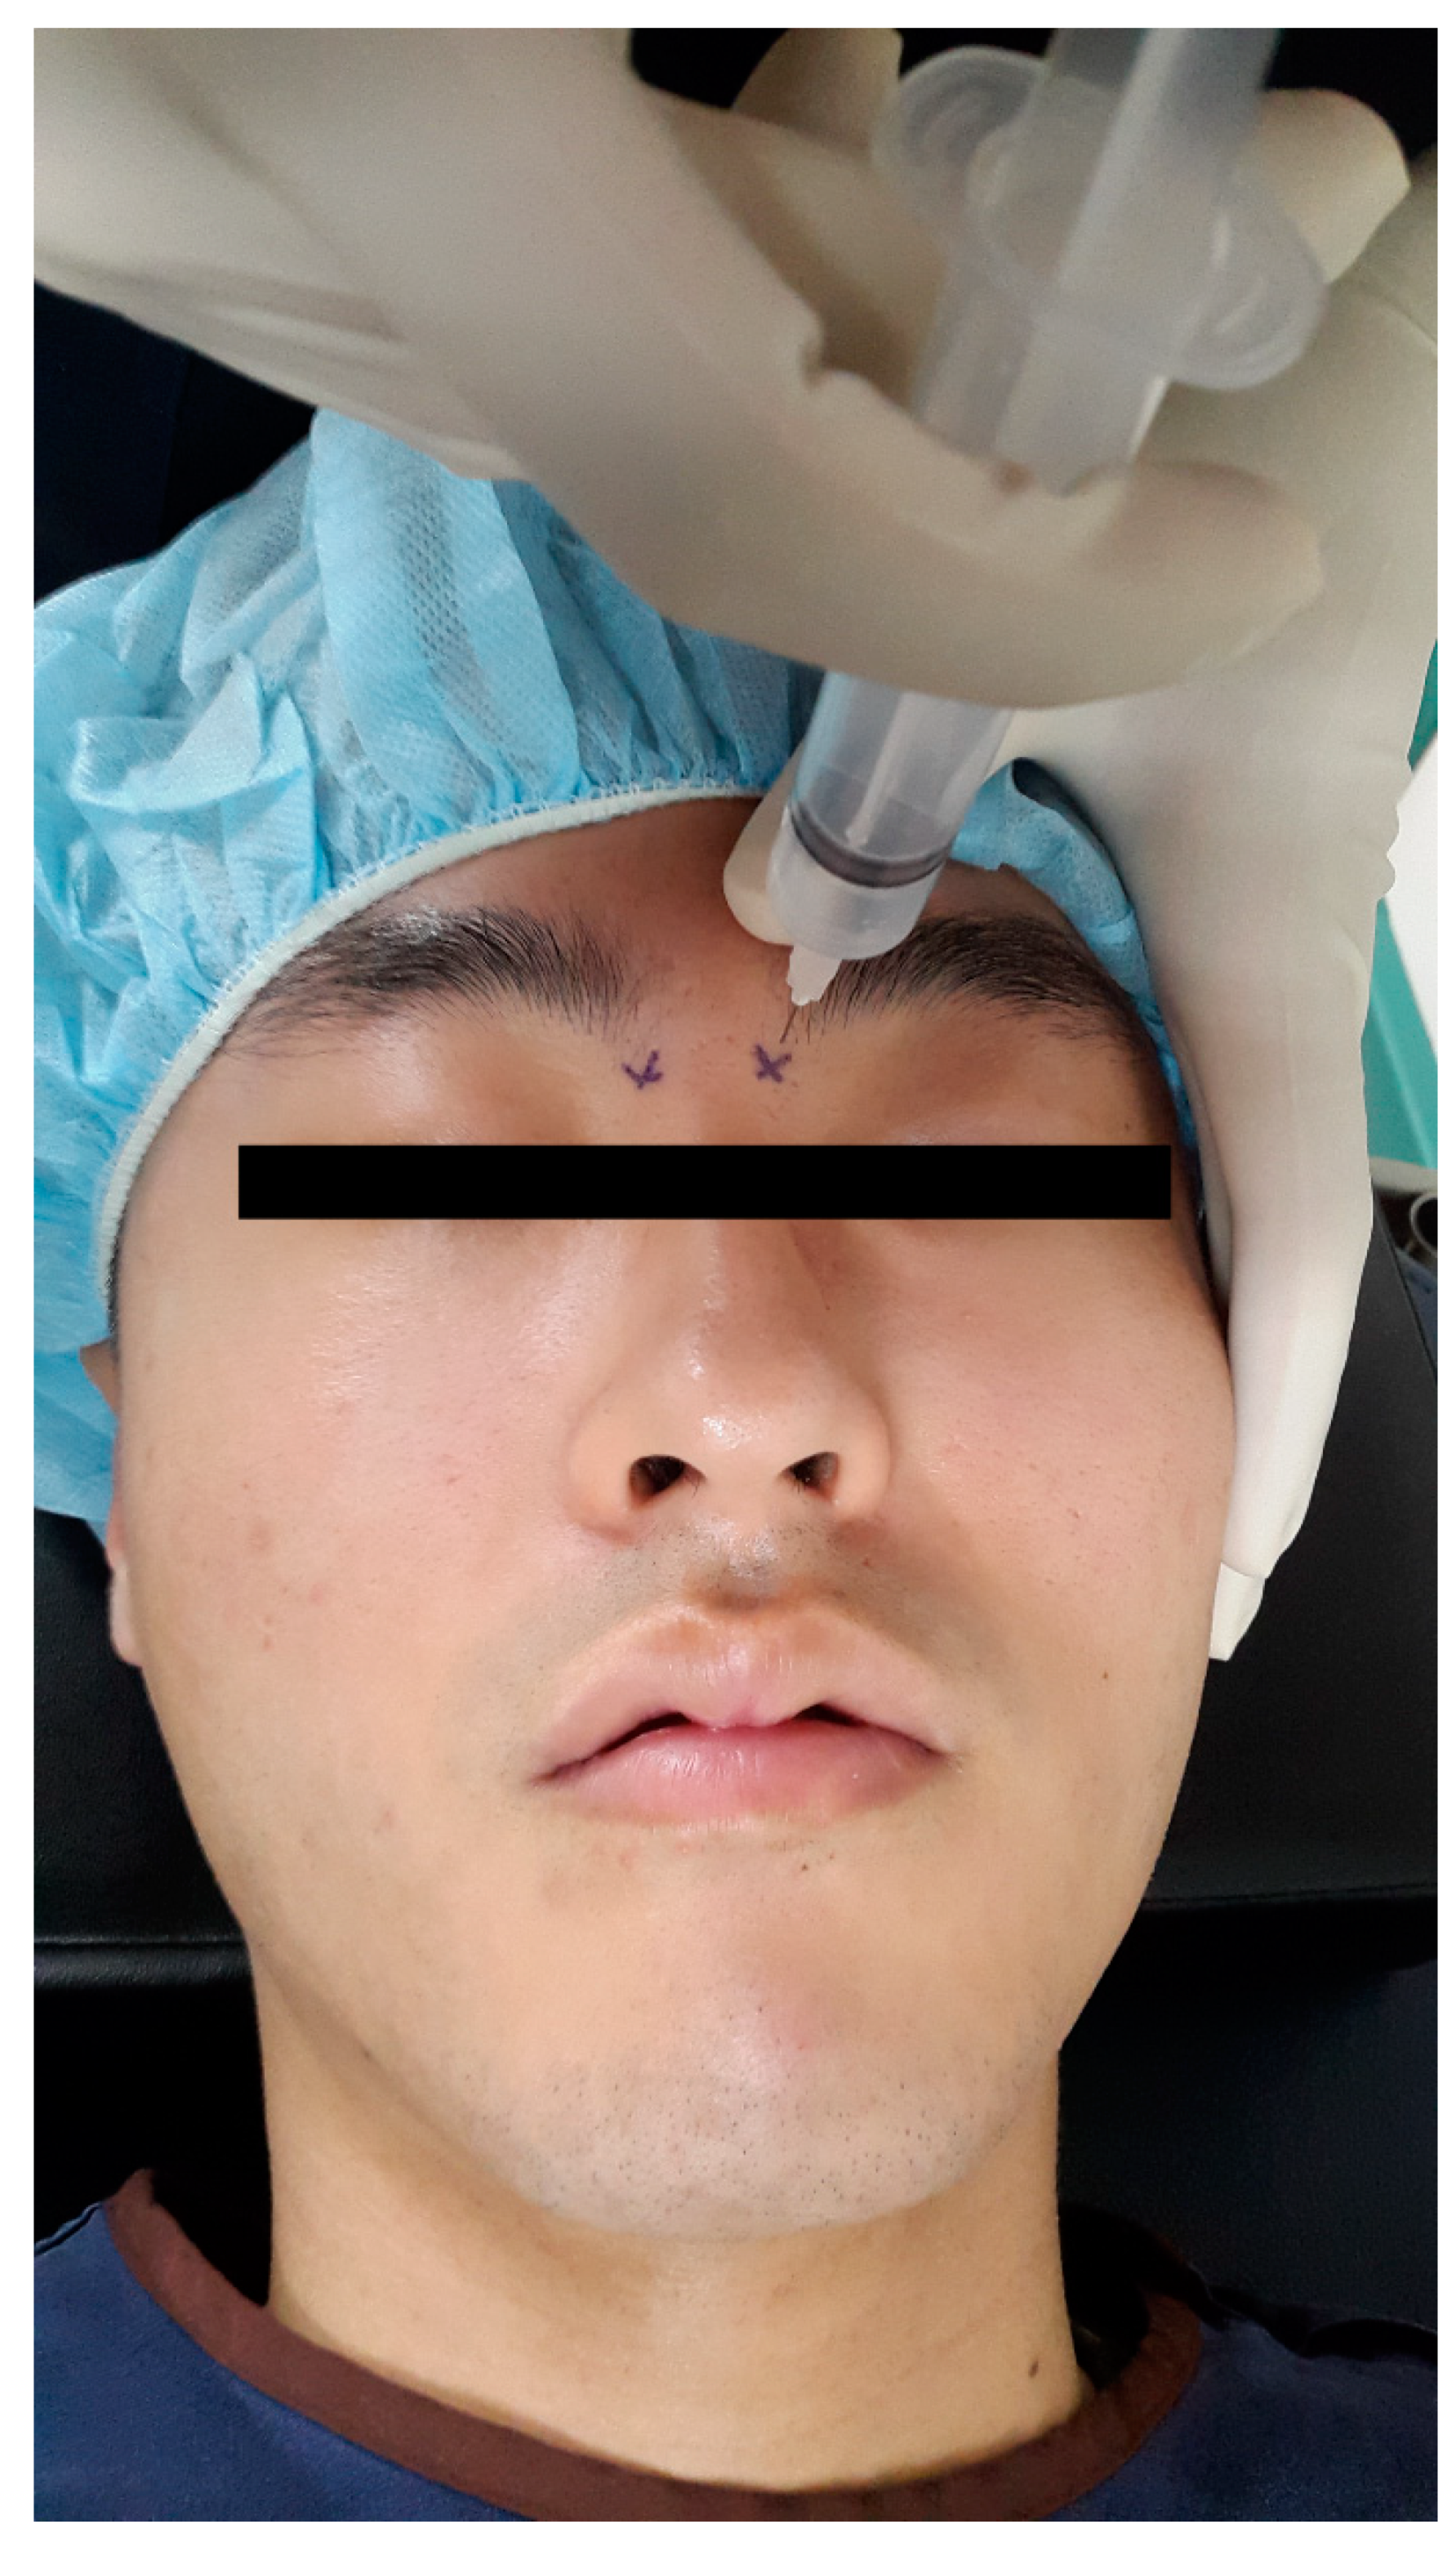 JCM | Free Full-Text | Effects of Bilateral Infraorbital and